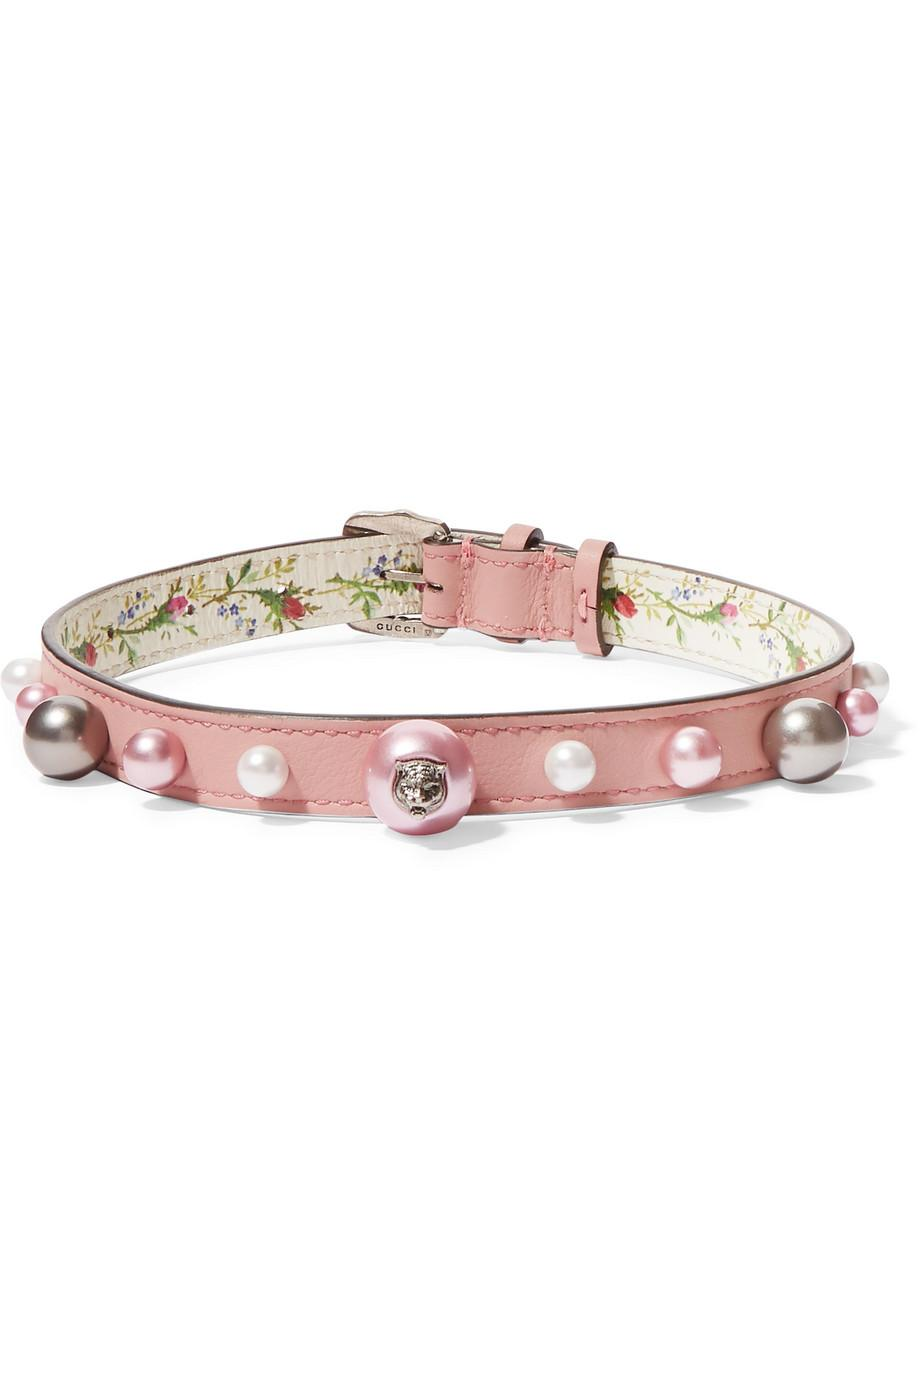 Gucci Leather, Silver-tone And Faux Pearl Choker - Pink